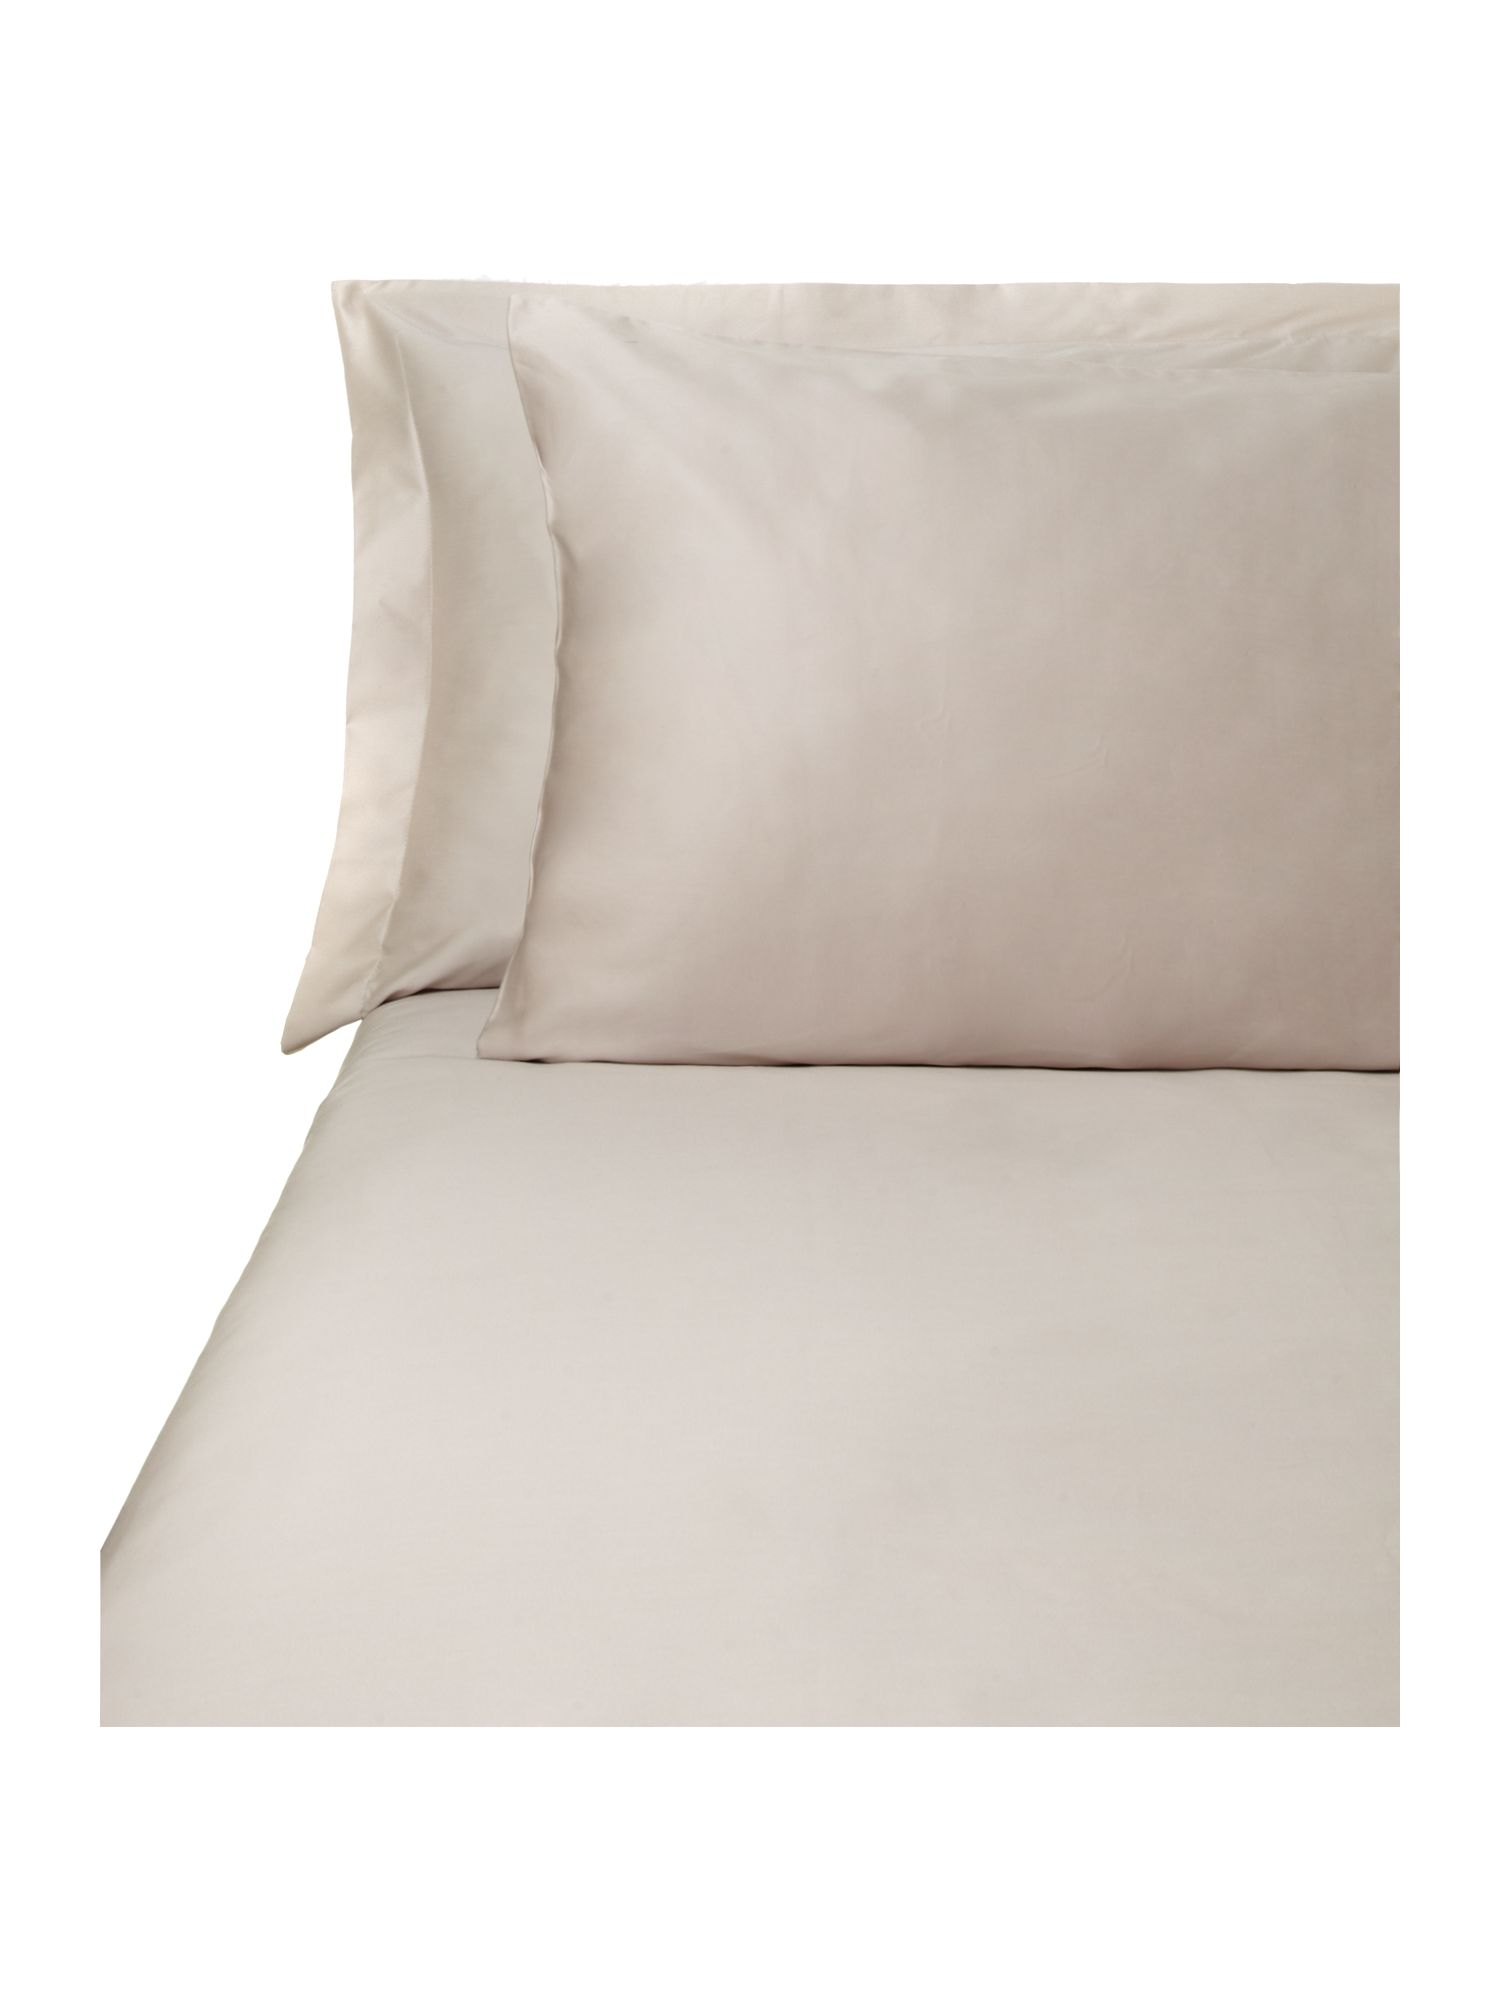 500 thread count king size duvet cover set taupe